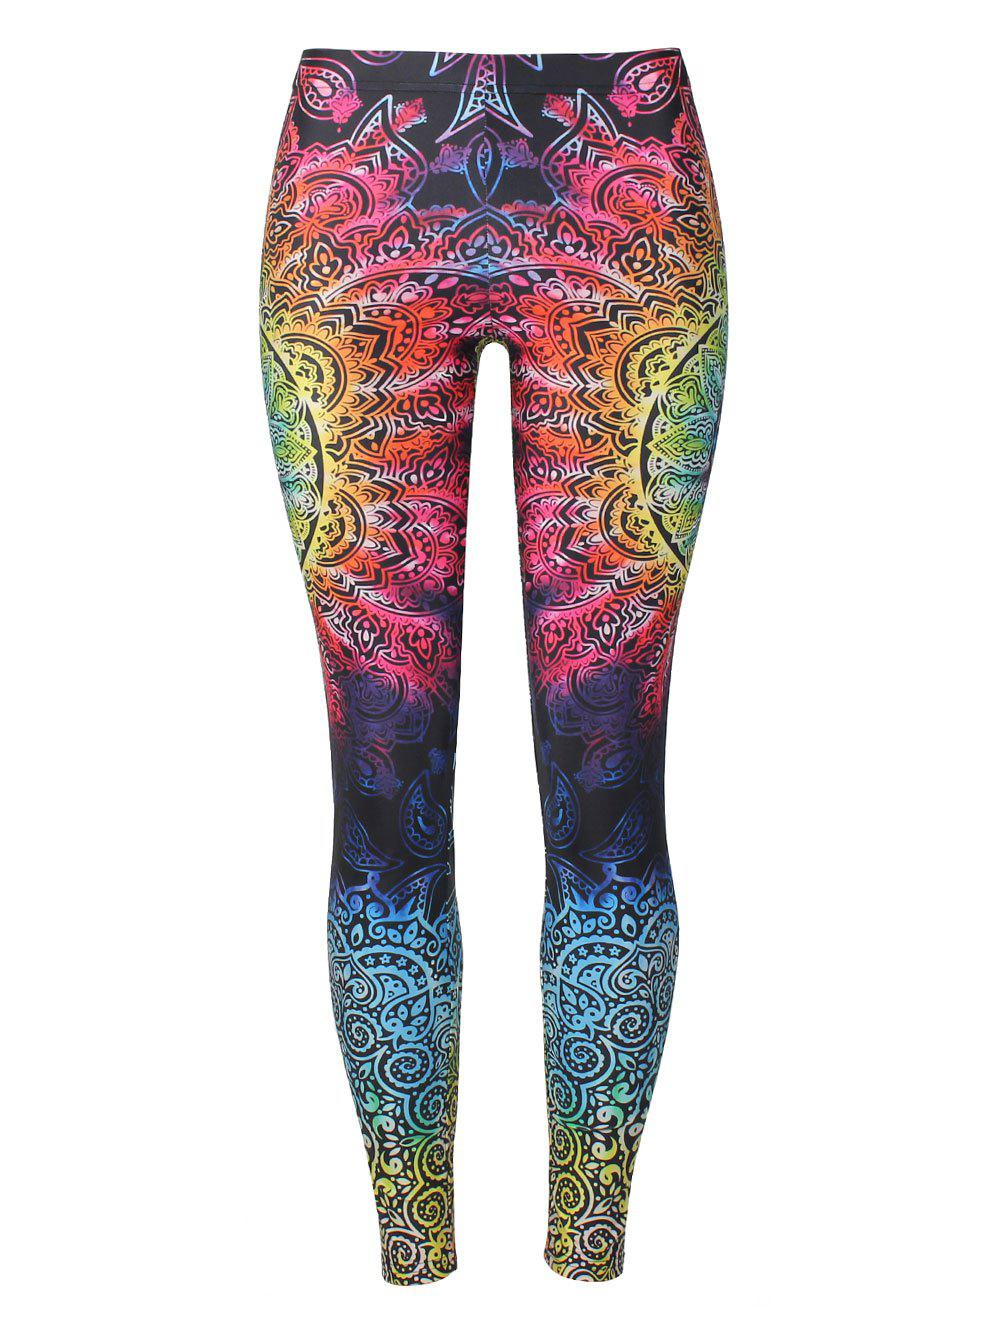 Skinny Print Bohemian Leggings - COLORMIX XL